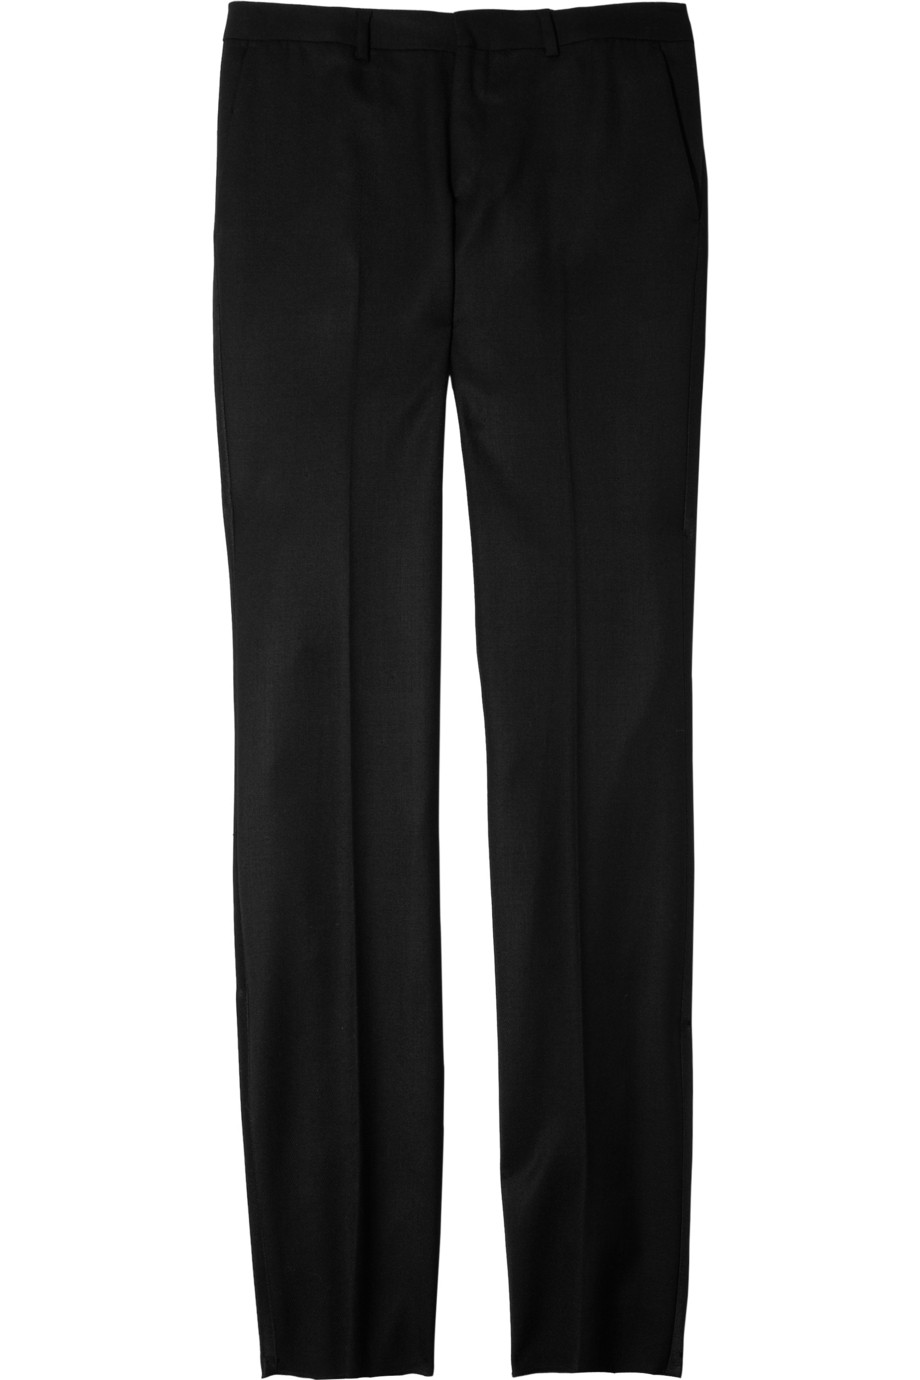 Black fleece by brooks brothers Wool-twill Straight-leg Pants in ...